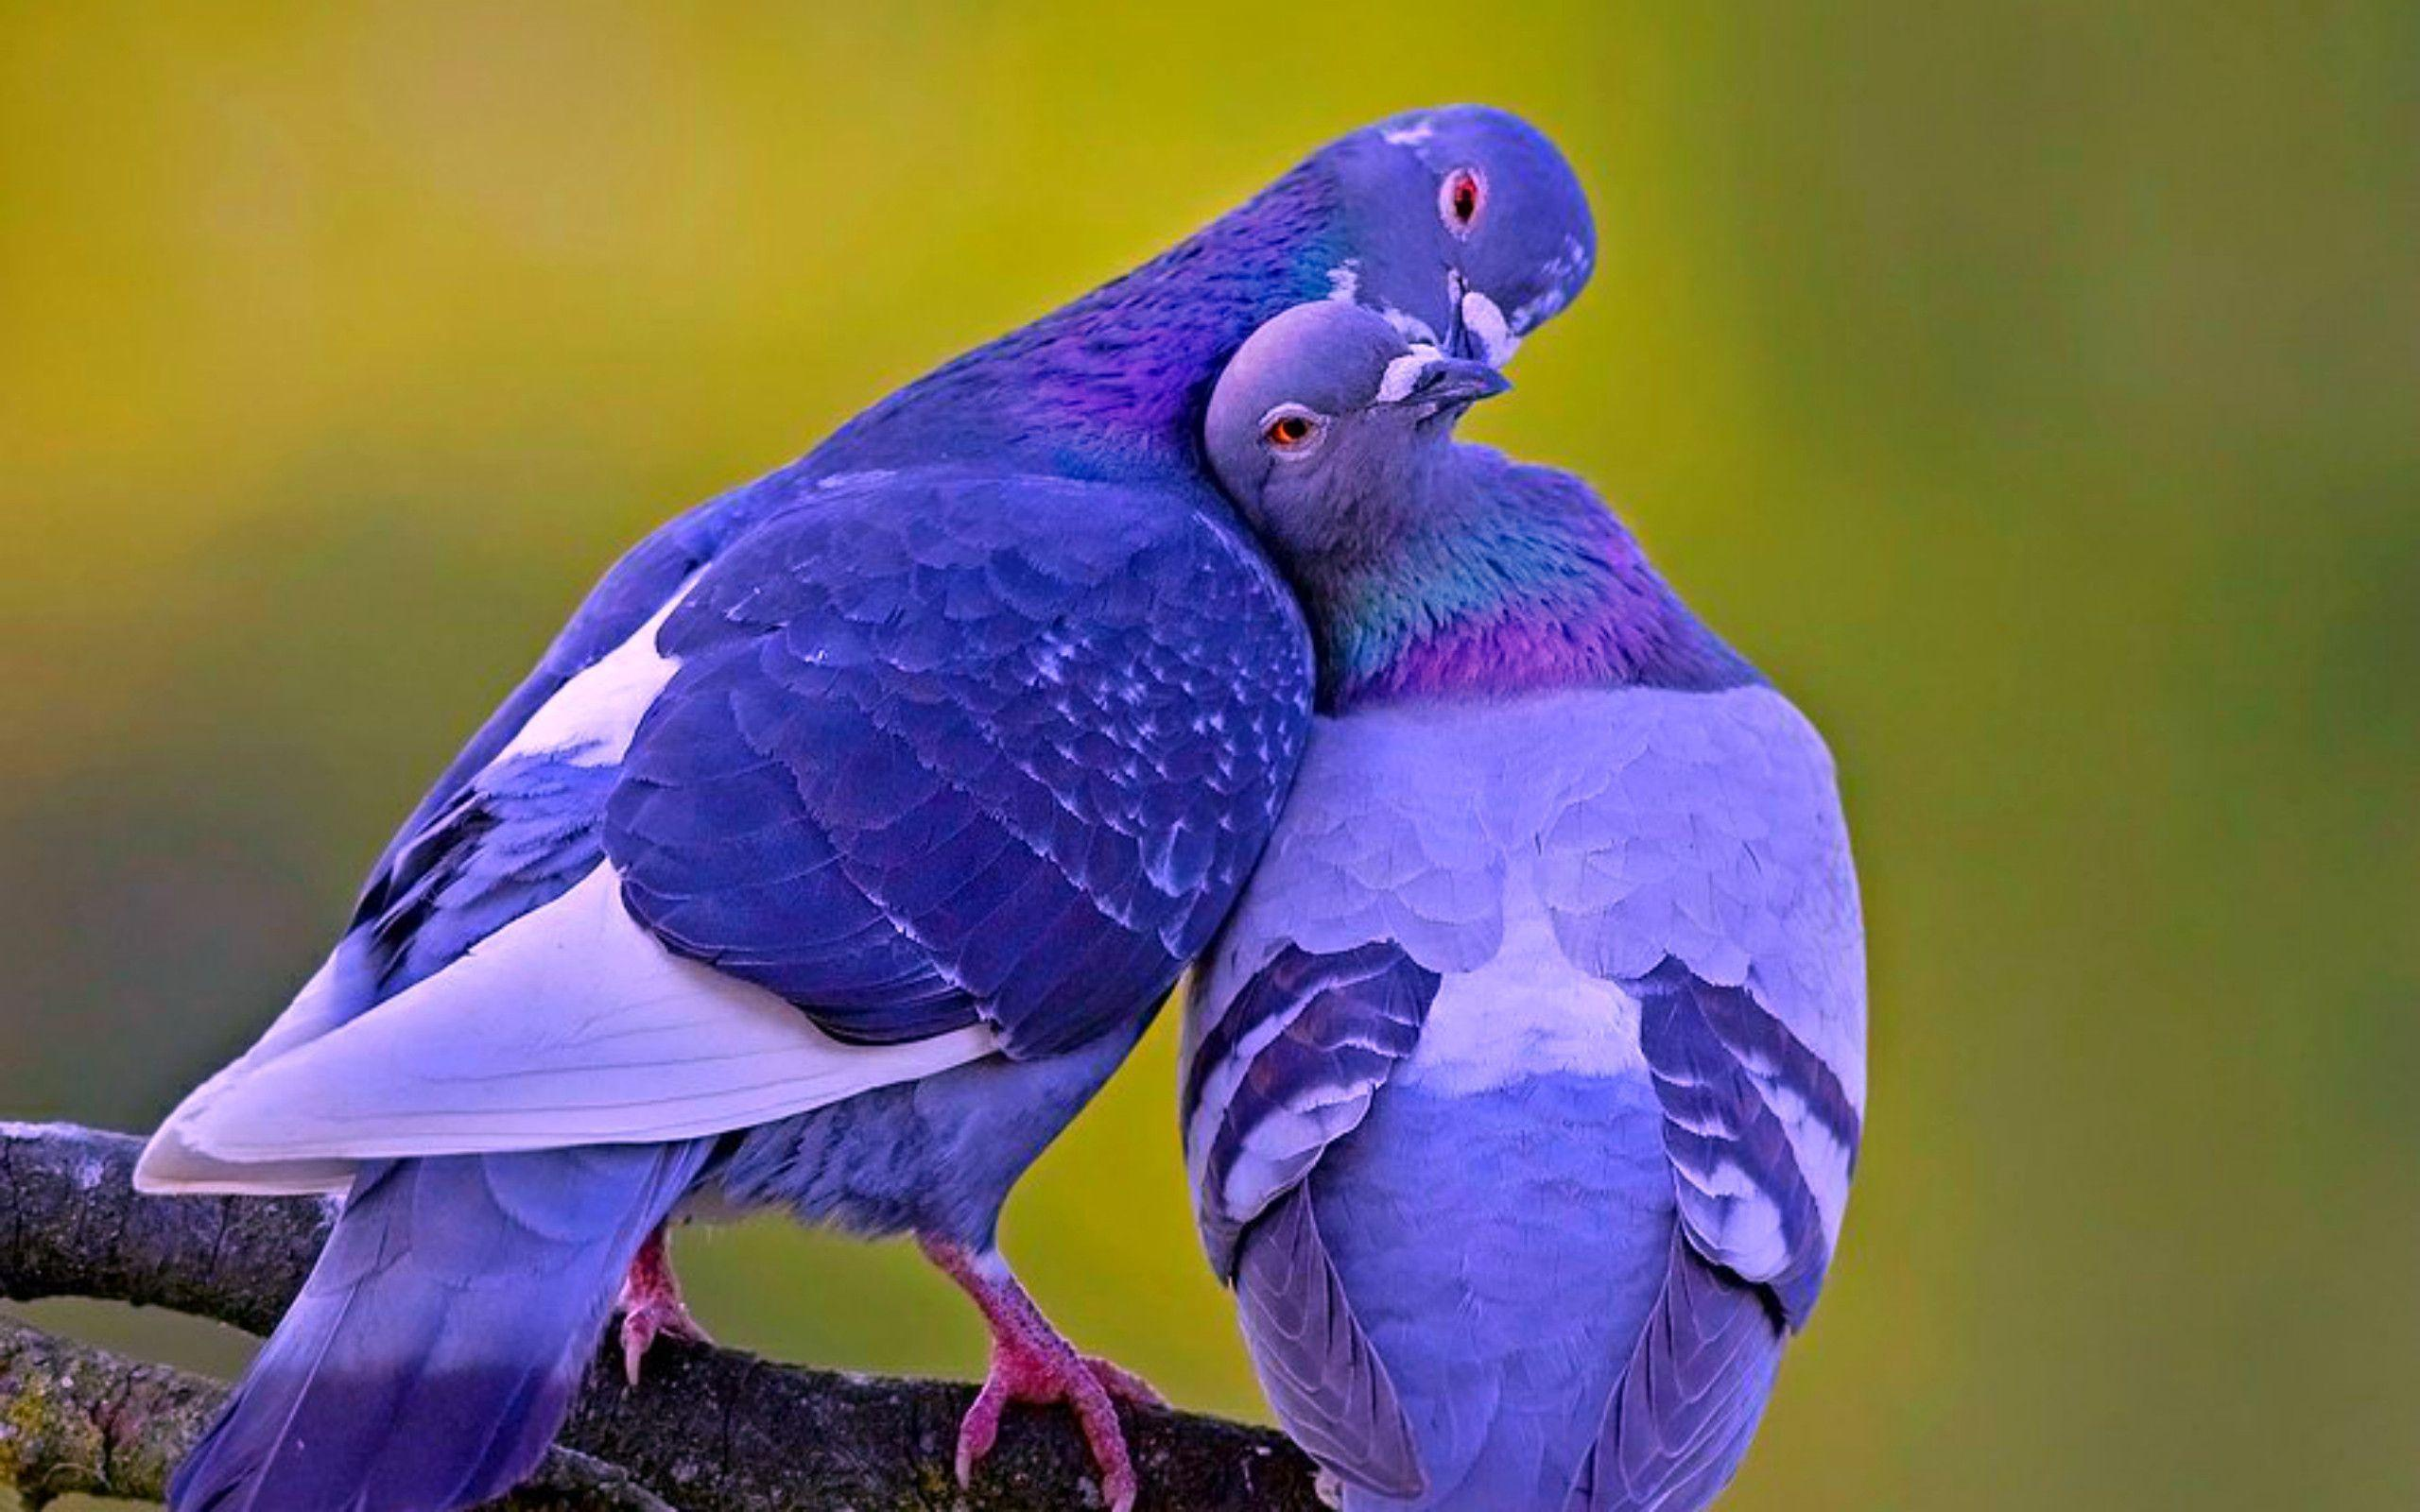 Image For > Love Birds Image Wallpapers